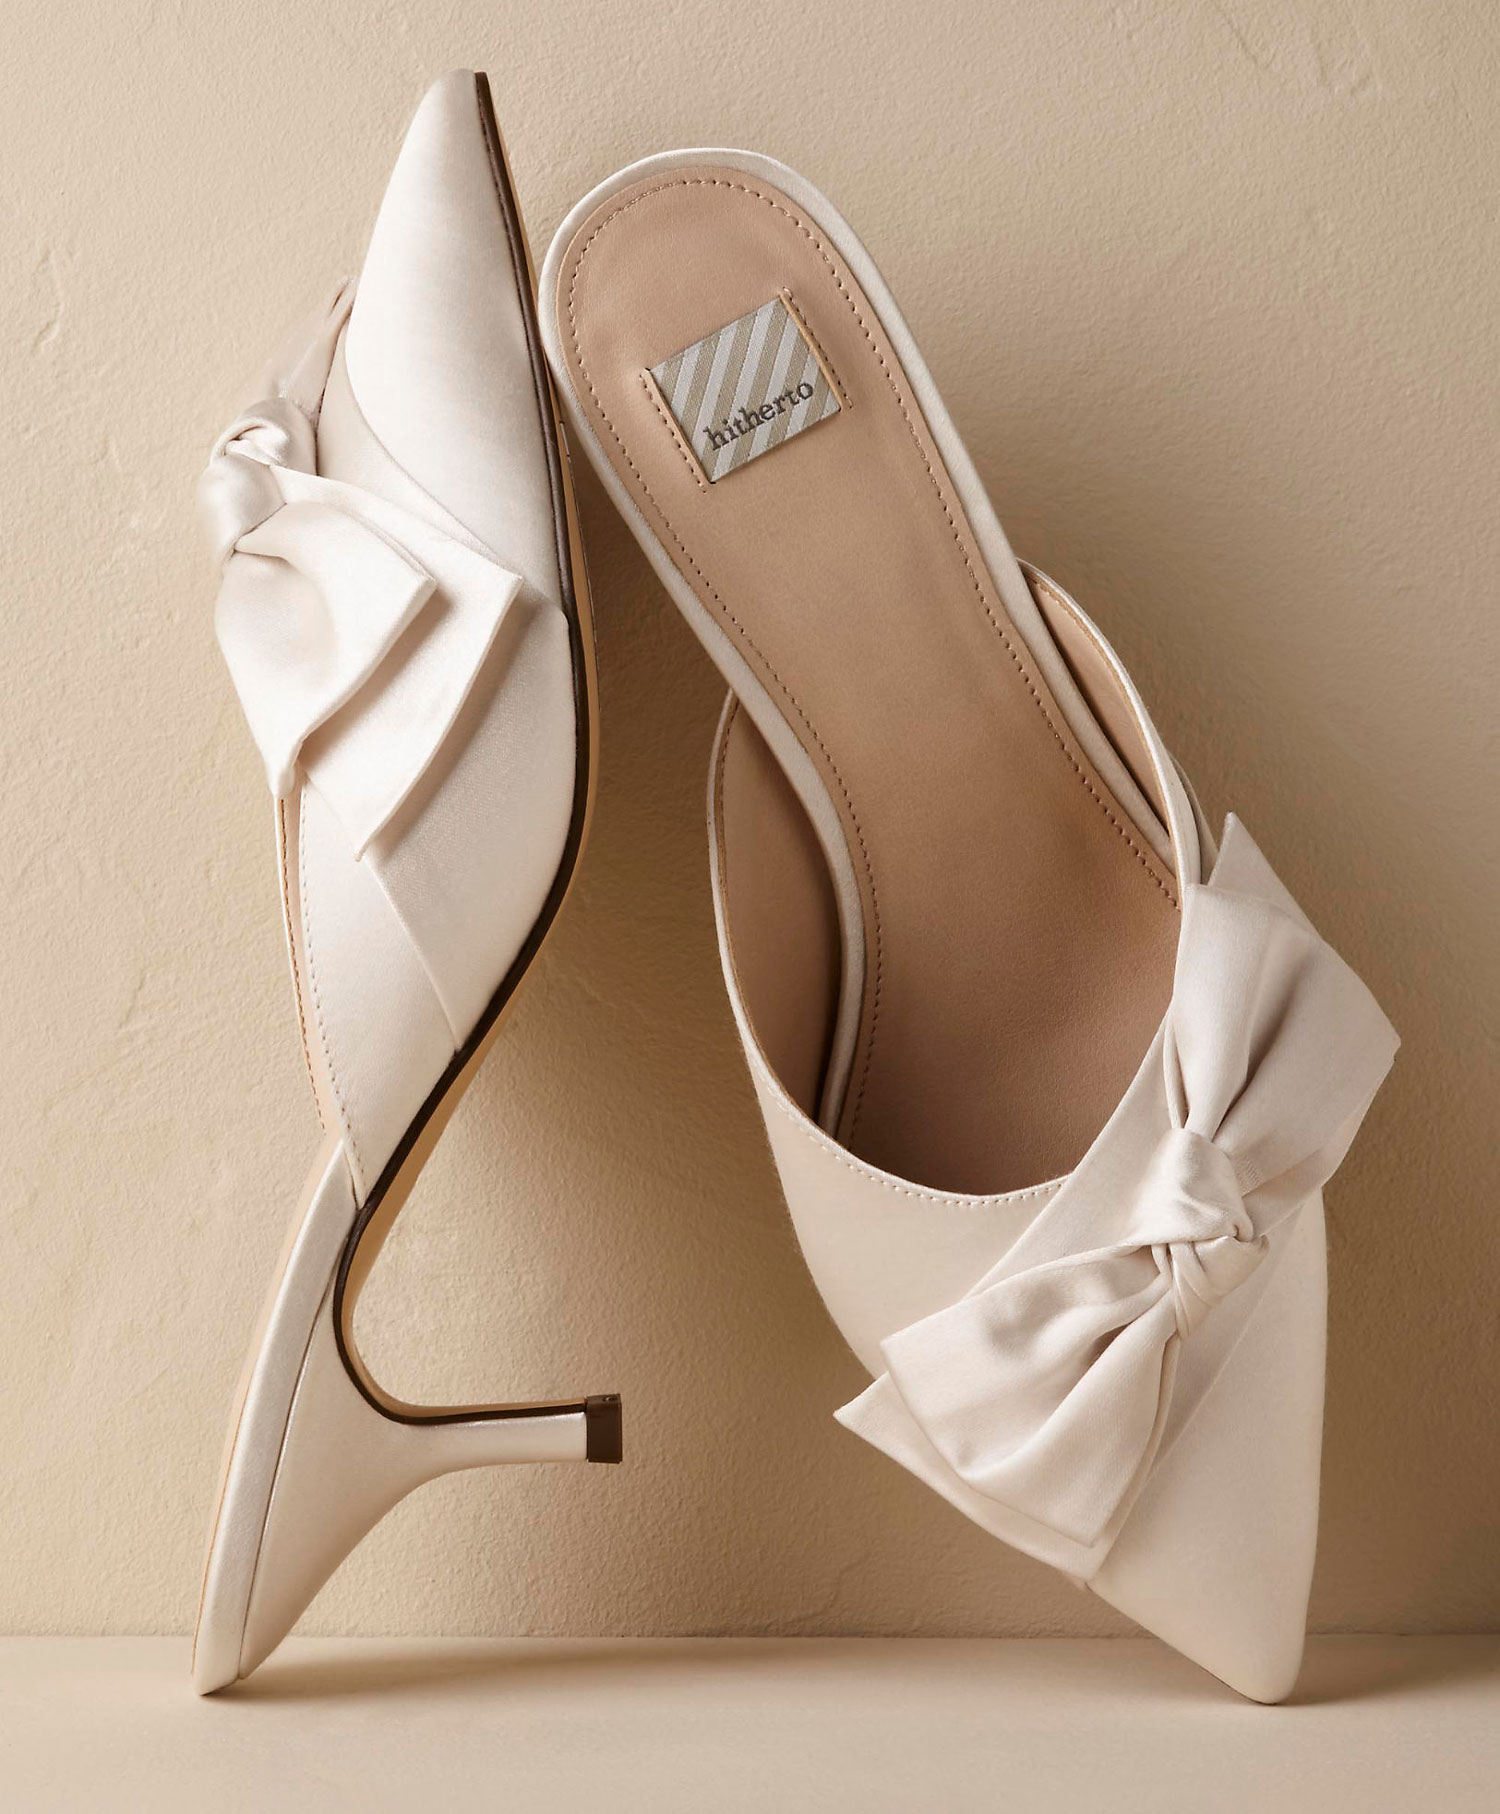 Lia mules Hitherto BHLDN white wedding shoes heels